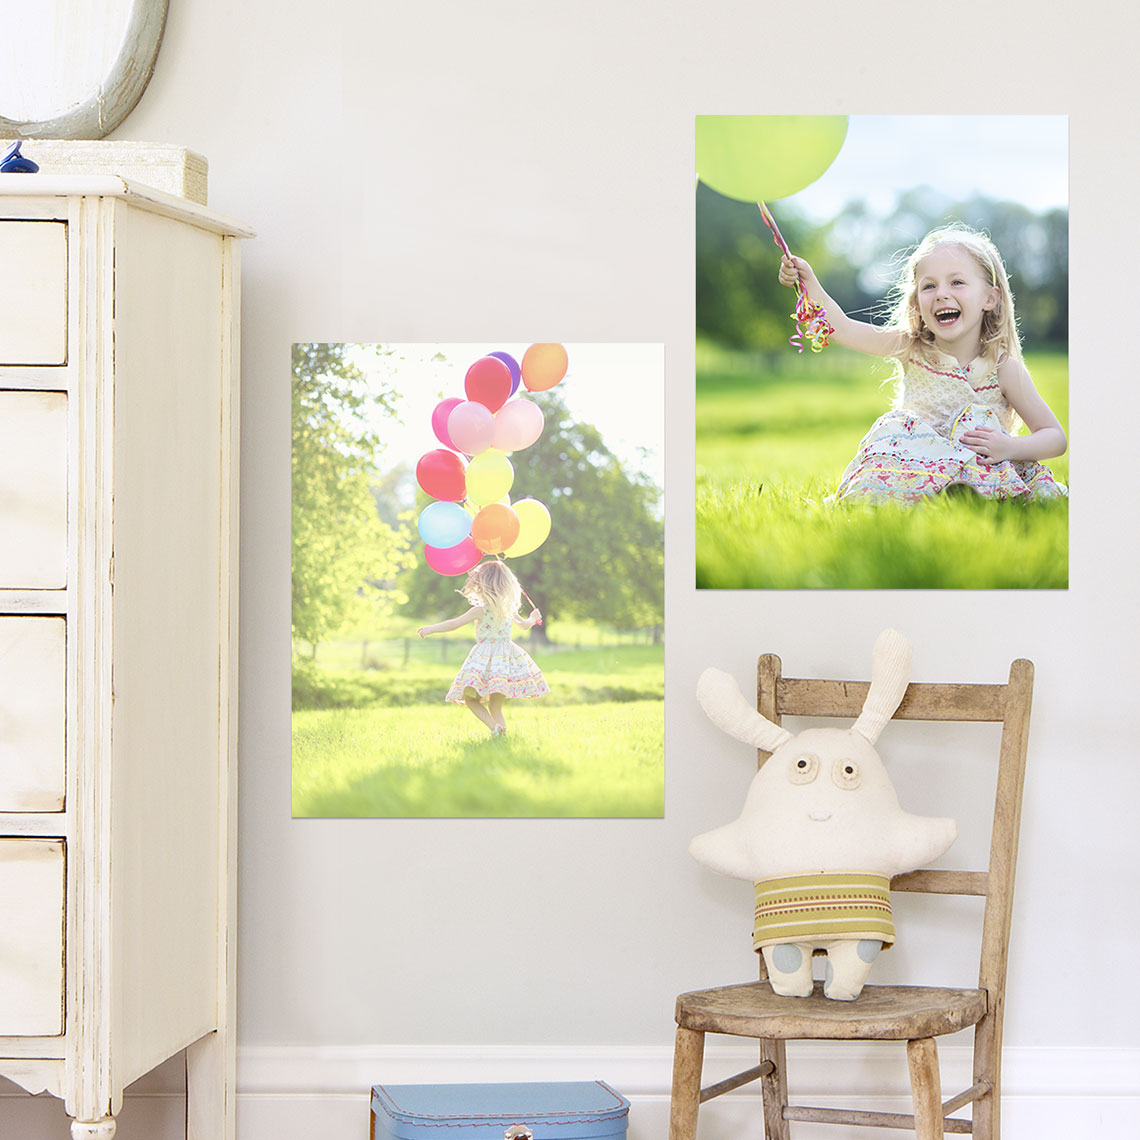 50x75cm 20x30 collage poster glossy